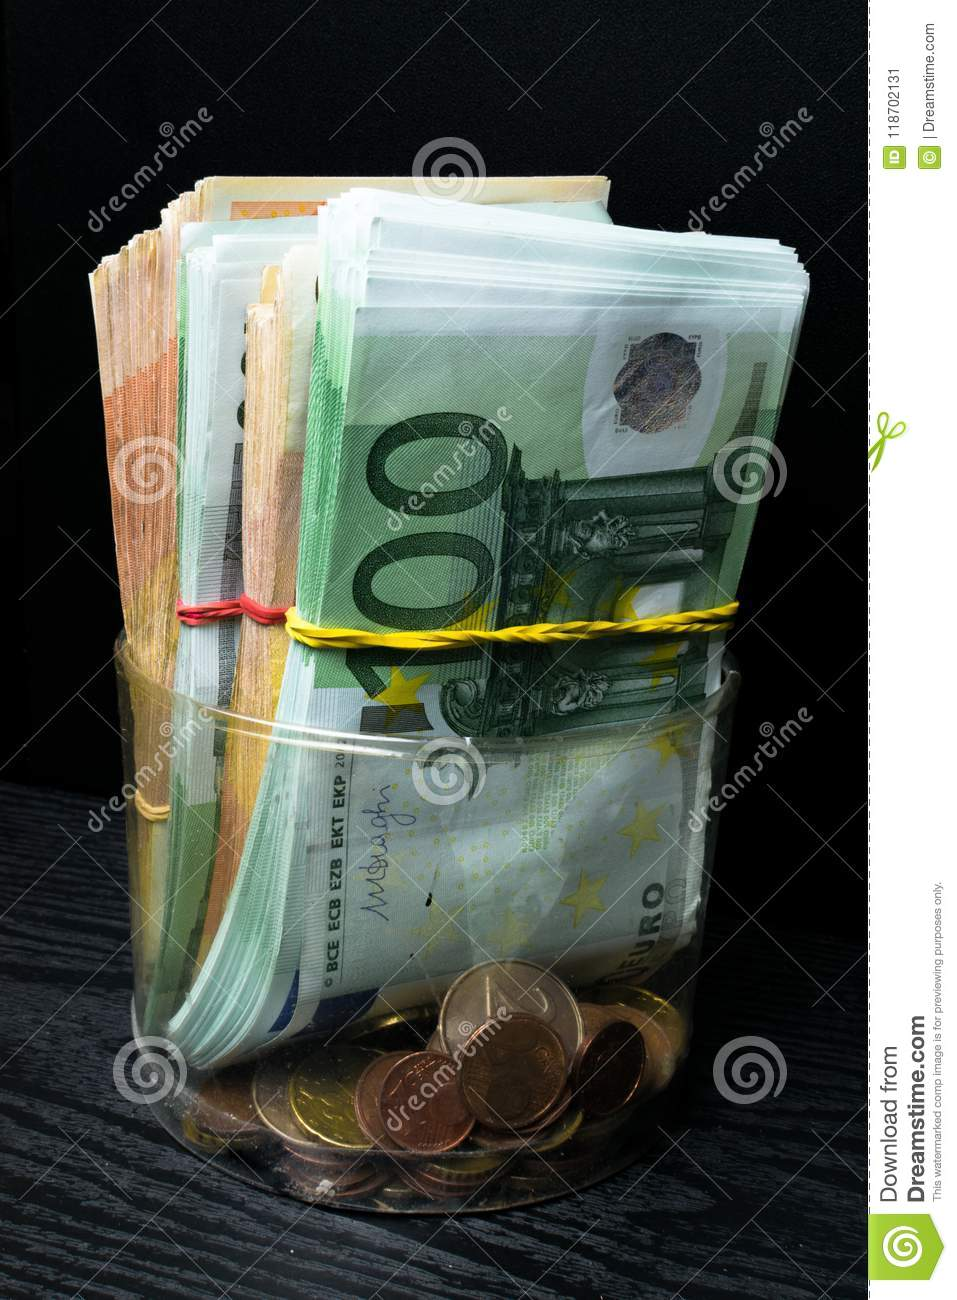 Saving money box with euro banknotes, cents. Banknotes of the european union. Euro cash background.